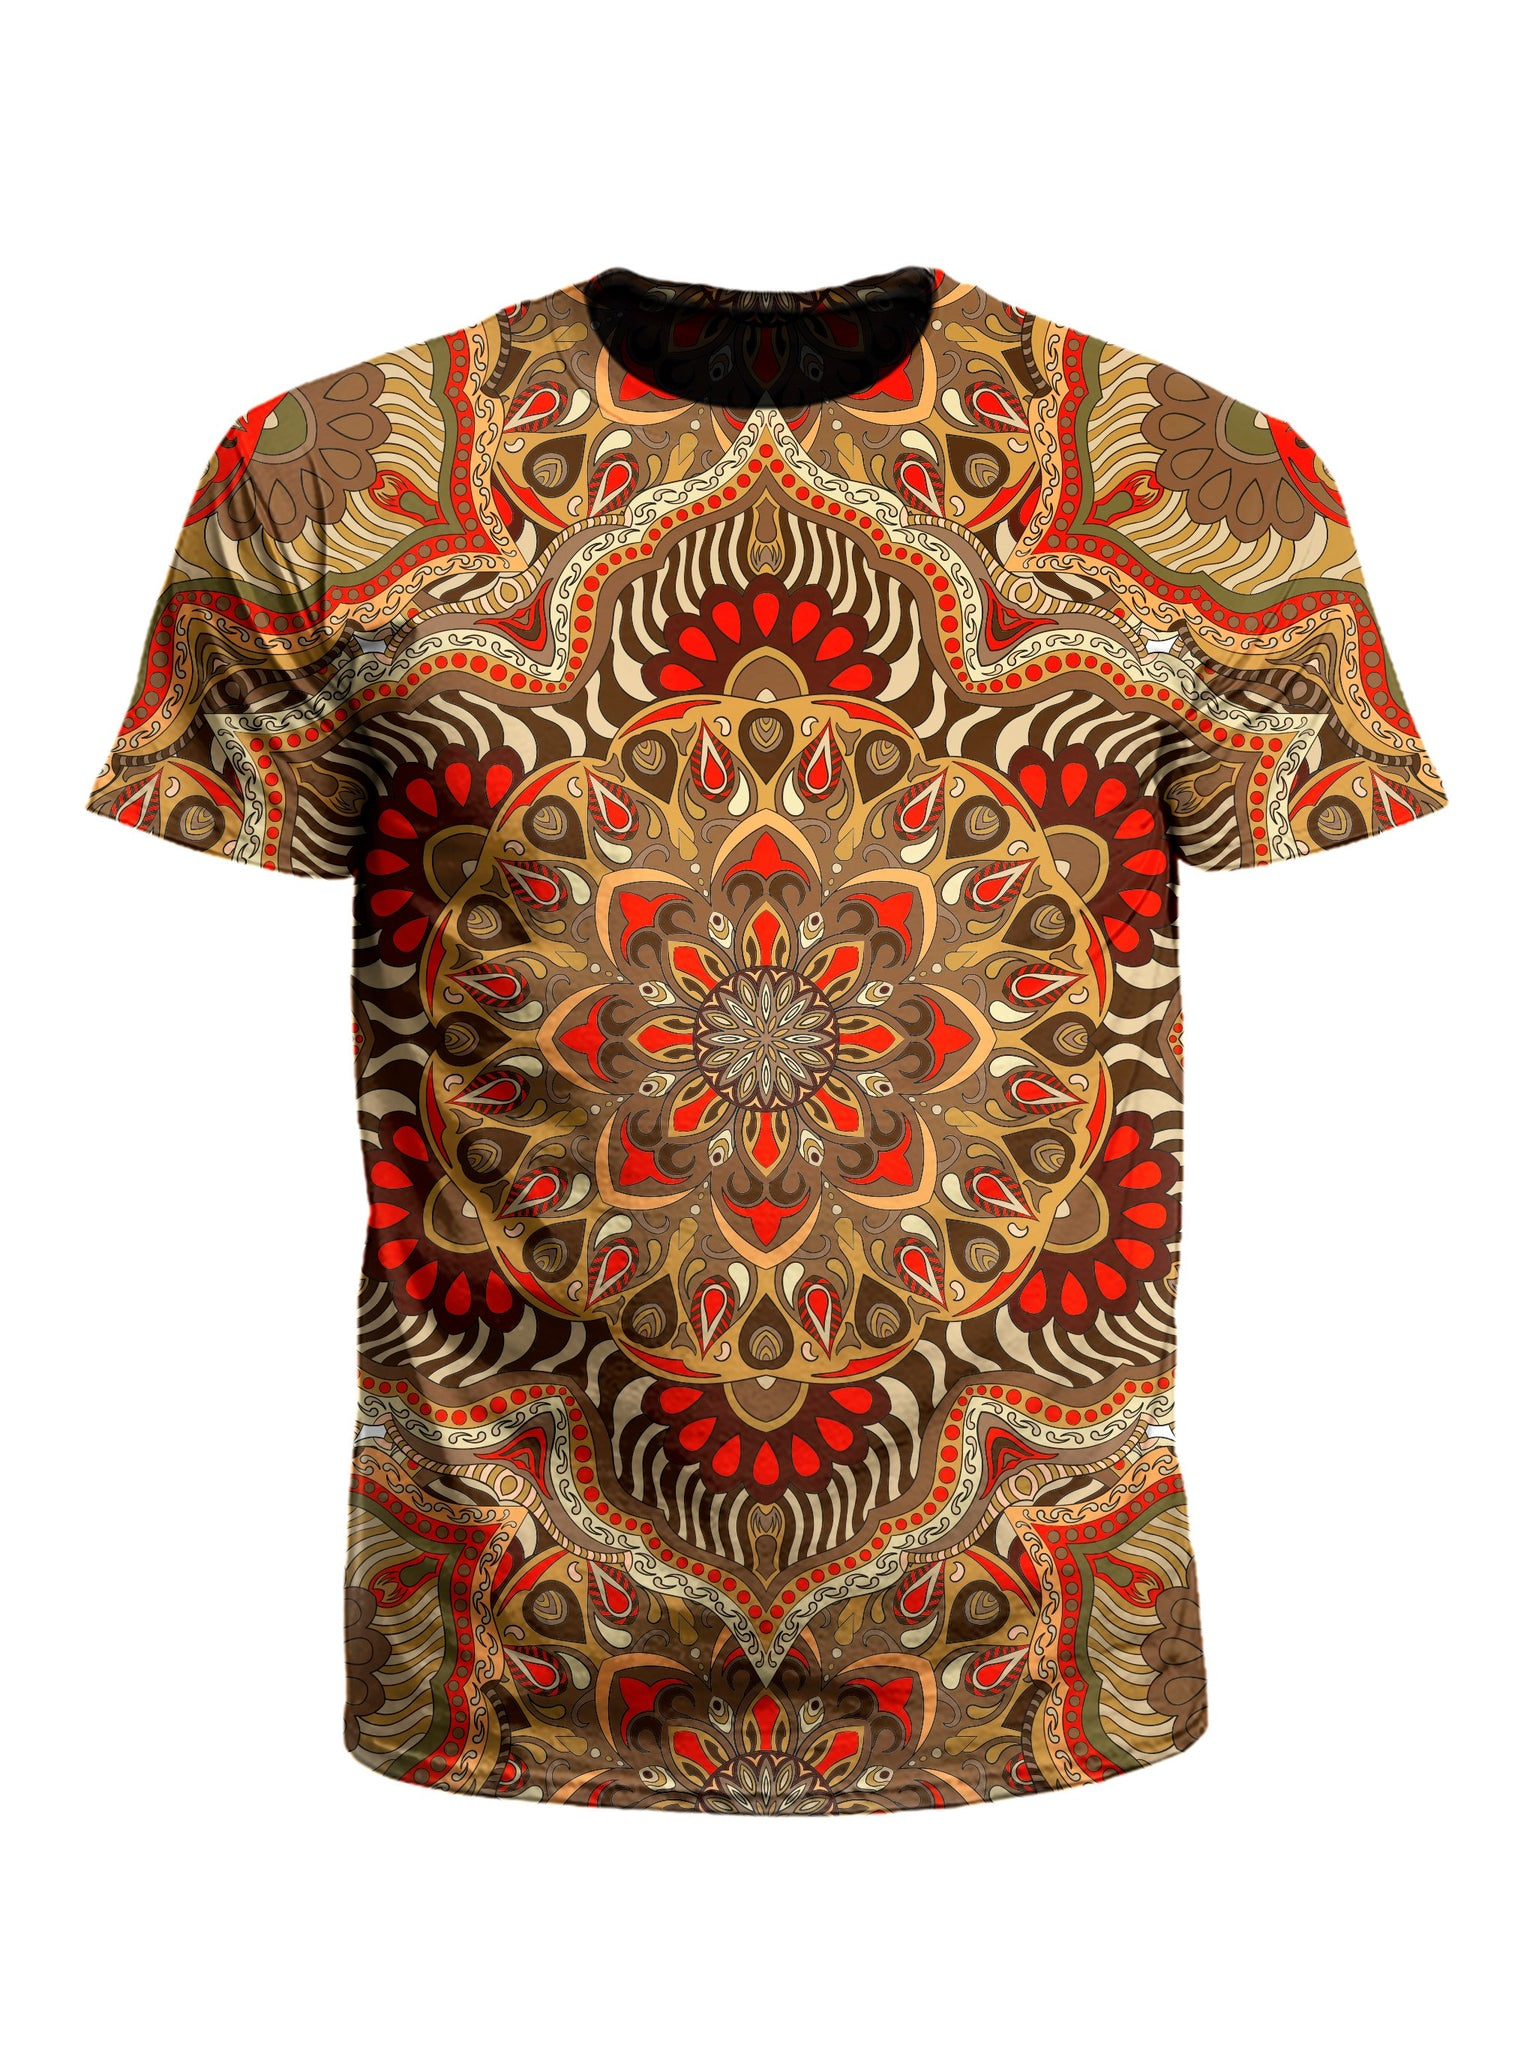 Men's orange & brown mandala unisex t-shirt front view.